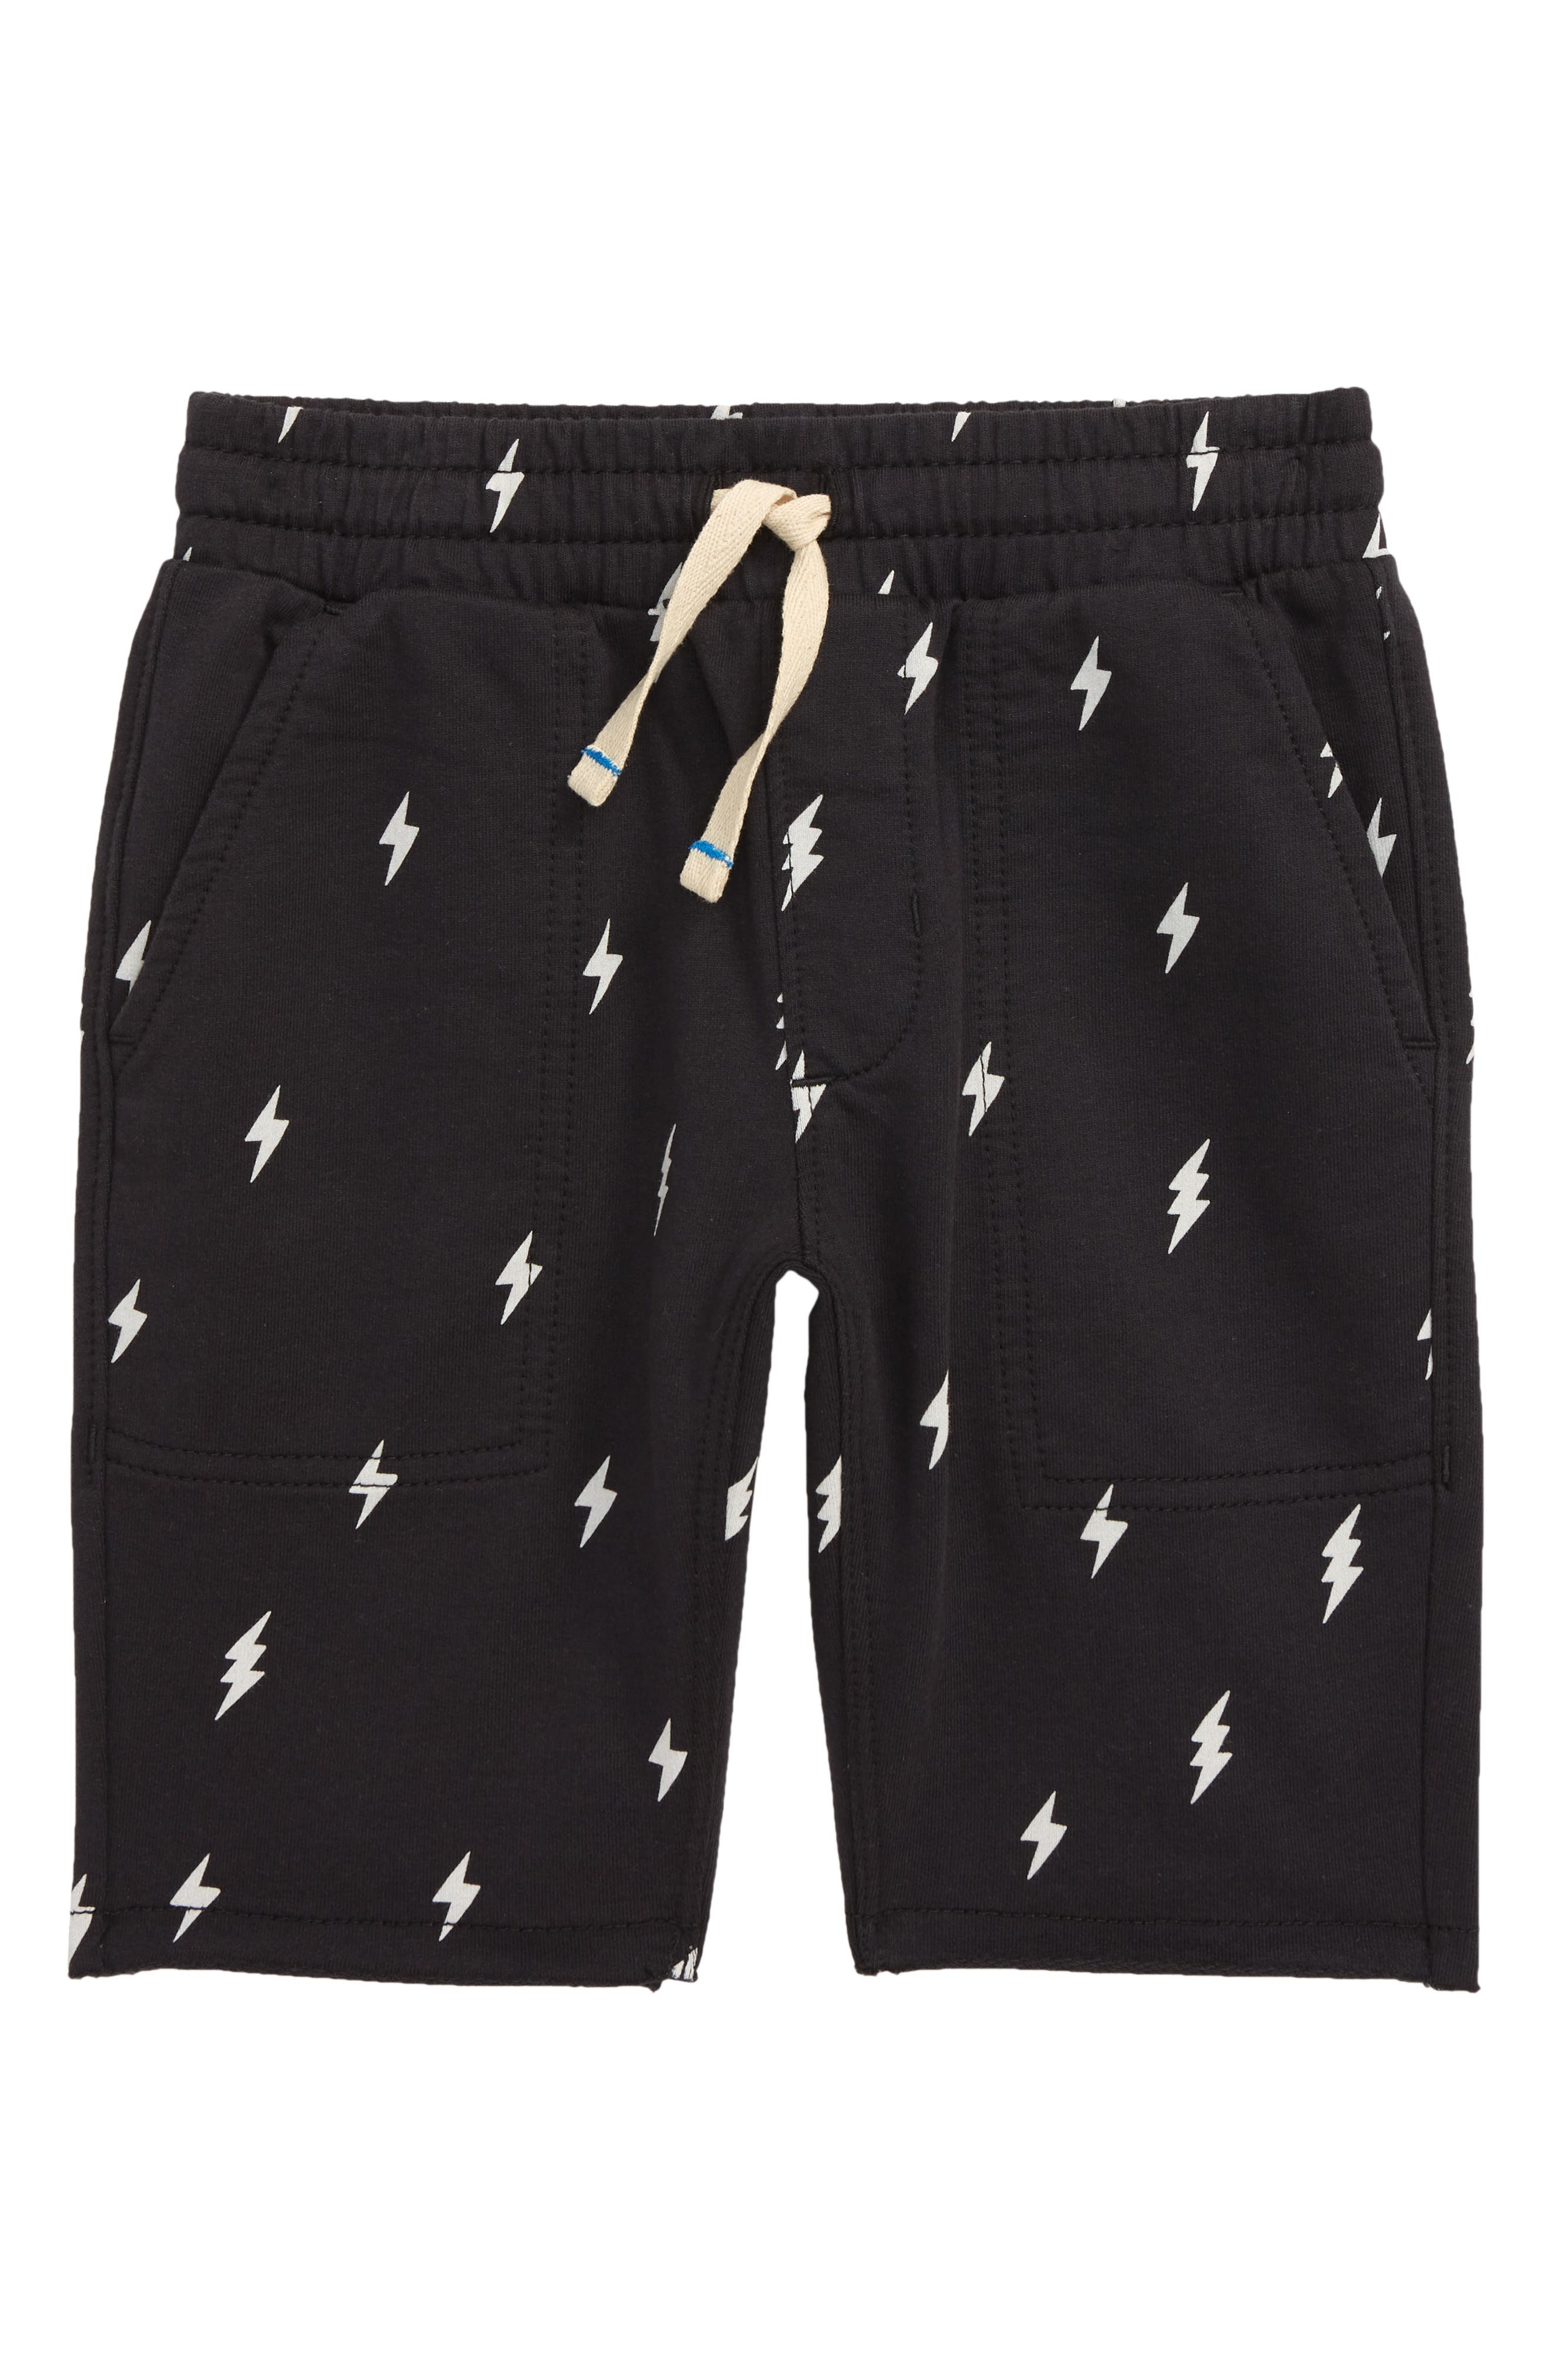 Image of Tea Collection Printed Knit Gym Shorts